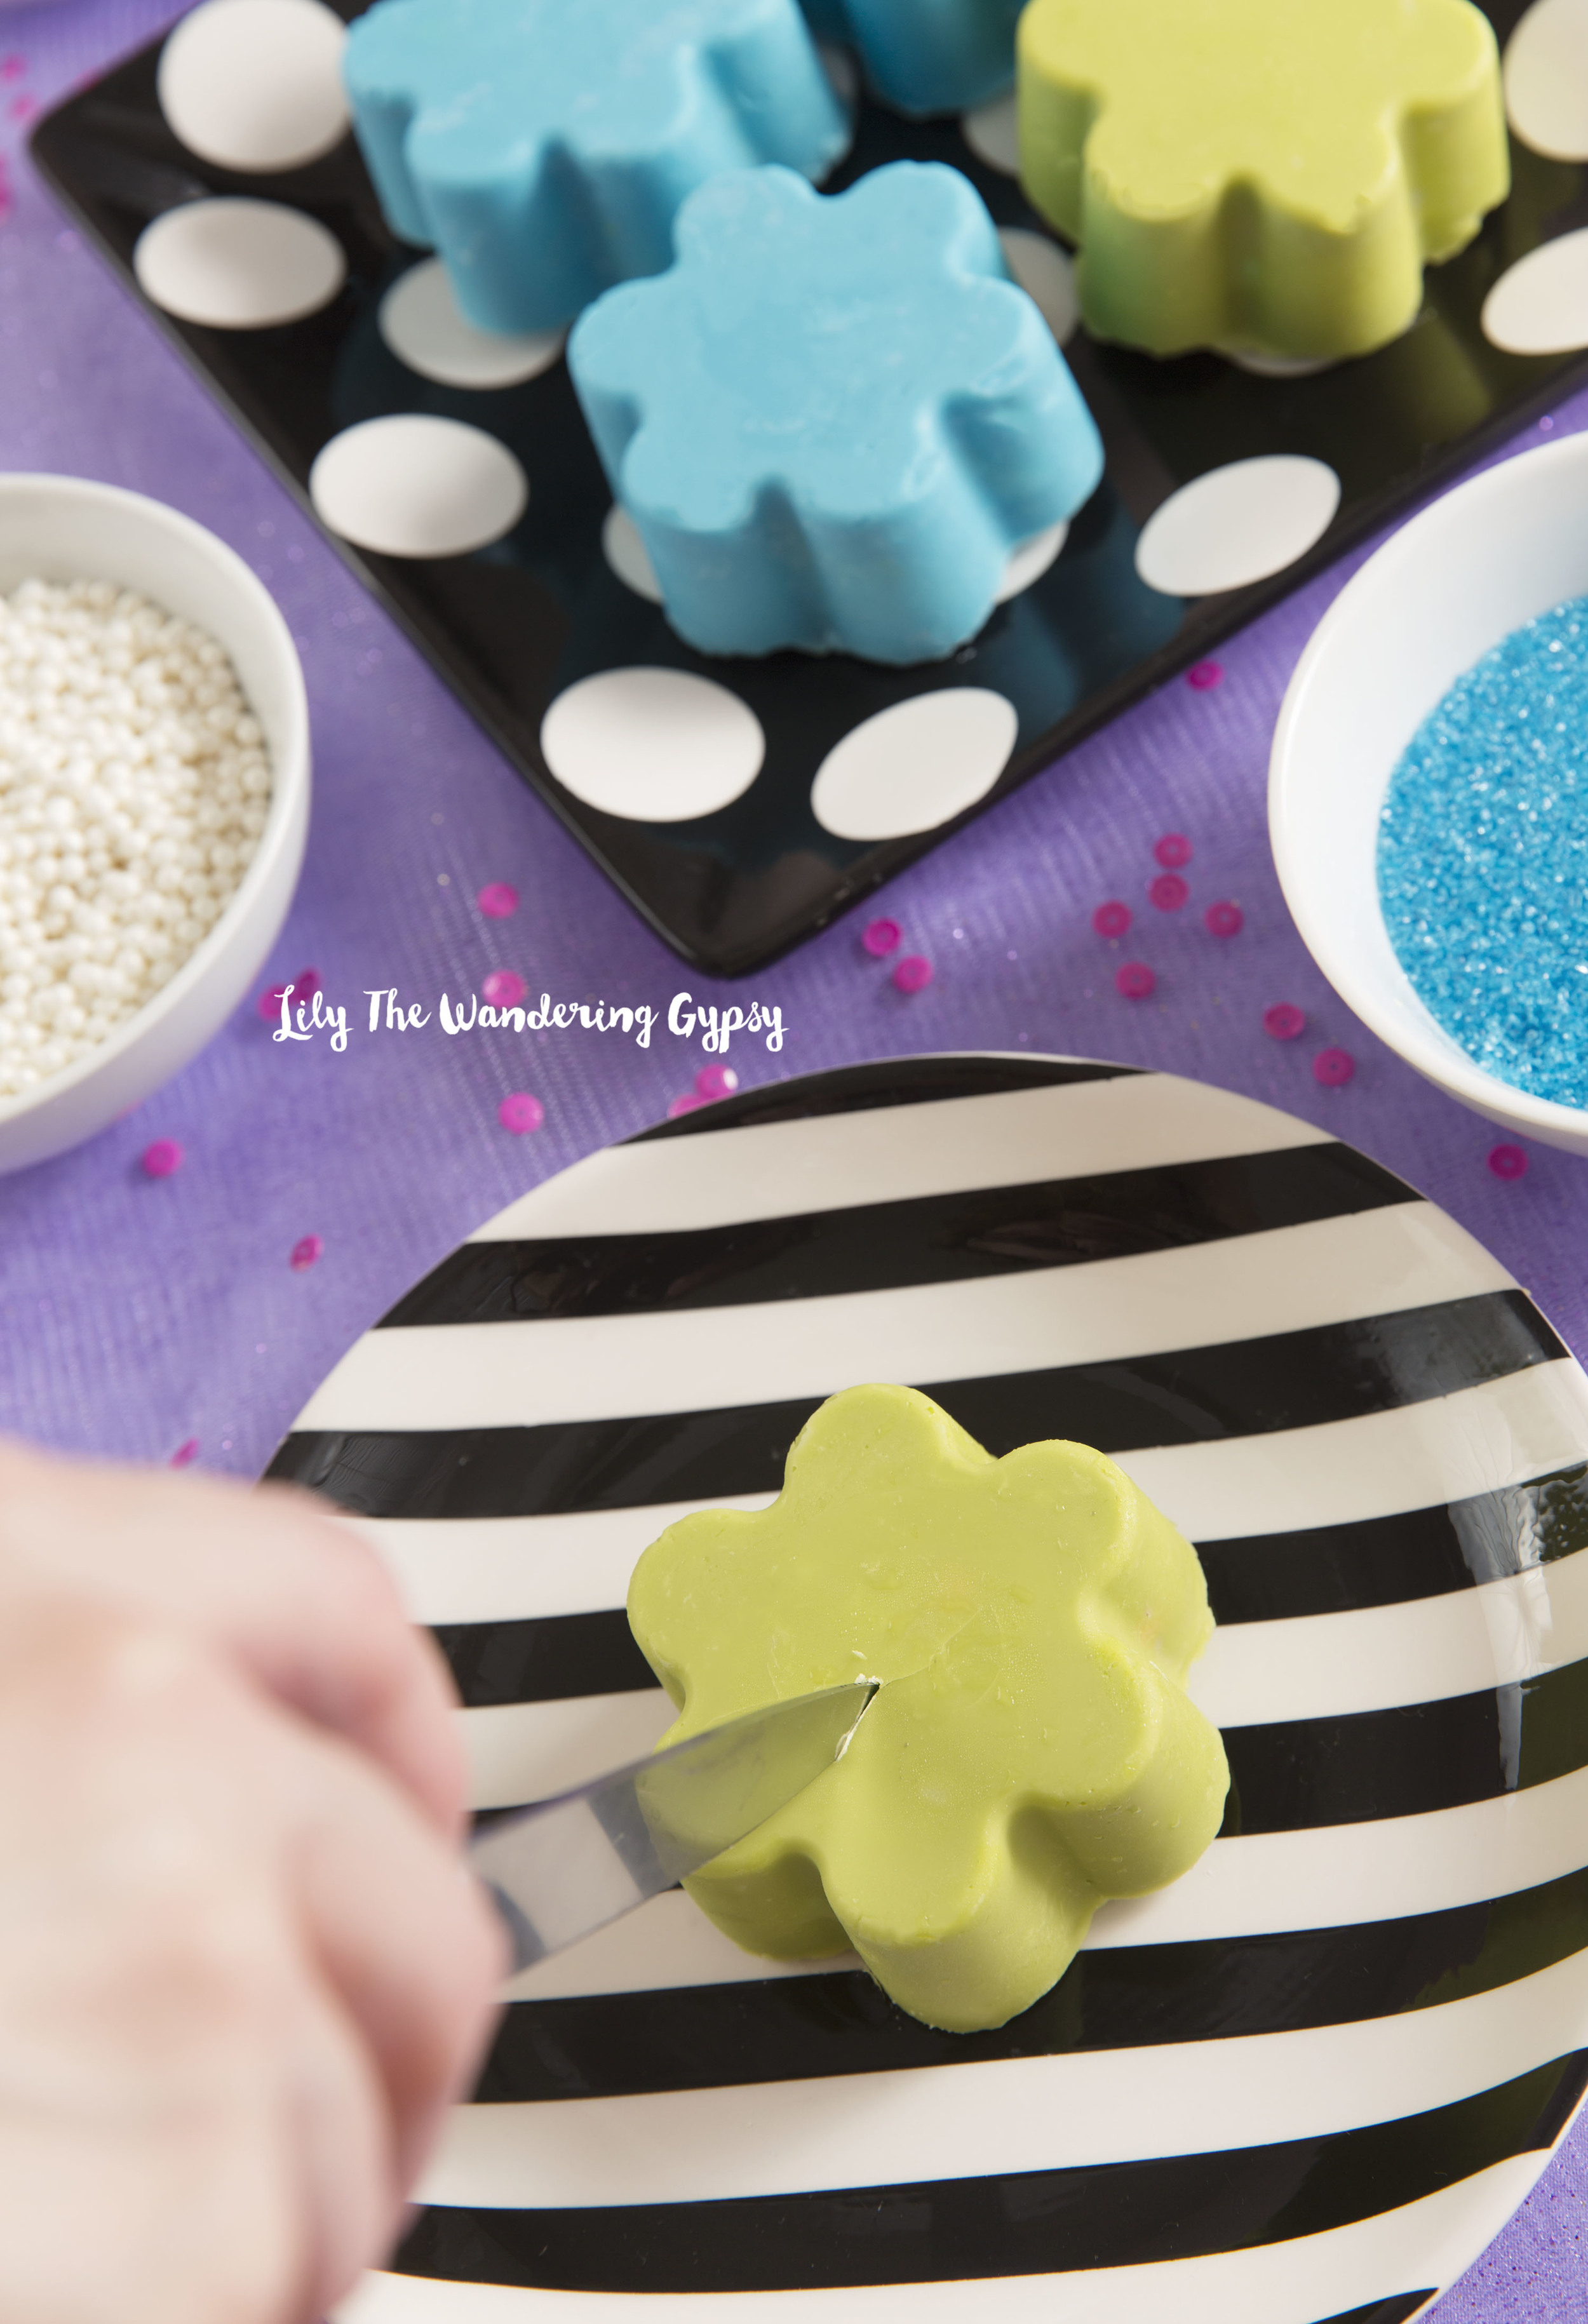 Now you can reveal your surprise candy inside! Just use a sharp kitchen knife, and (very carefully), cut into the candy as if you are cutting a slice of cake.